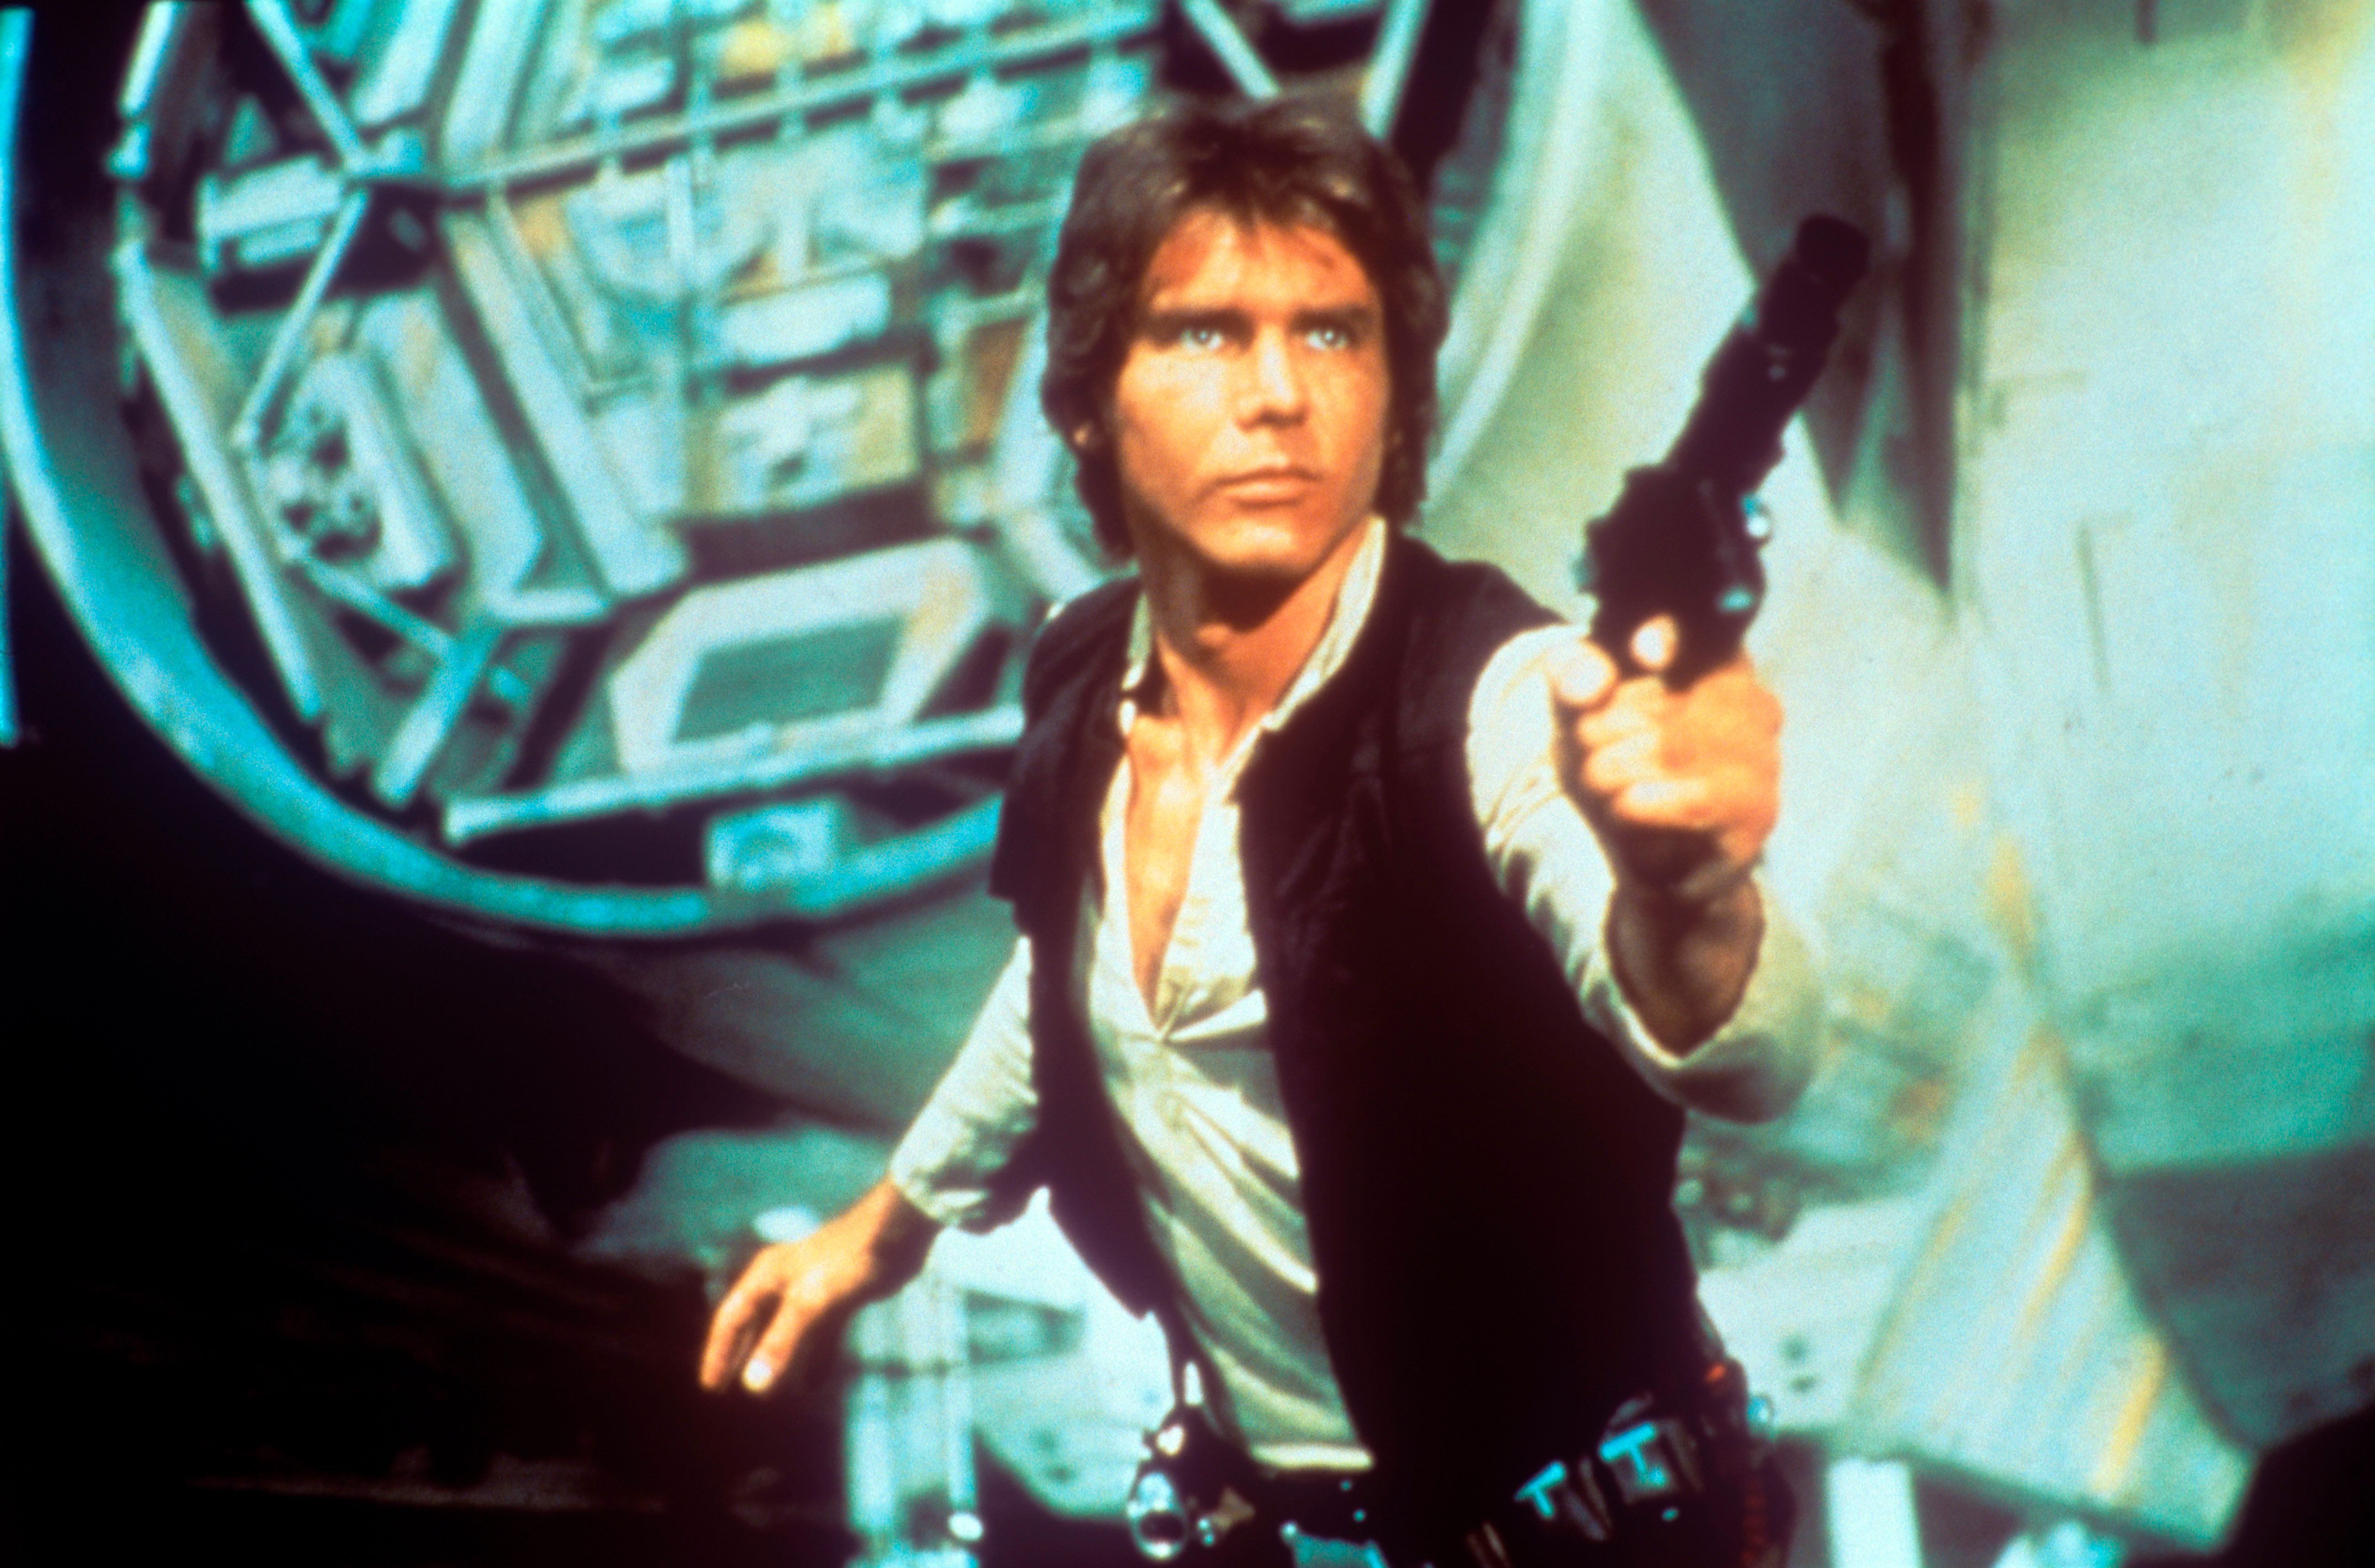 In a scene from George Lucas' epic space opera Star Wars, the American actor Harrison Ford as rebel smuggler Han Solo draws a gun against enemies; behind him can be seen a fantastic space shuttle. USA, 1977. . (Photo by Mondadori Portfolio via Getty Images)